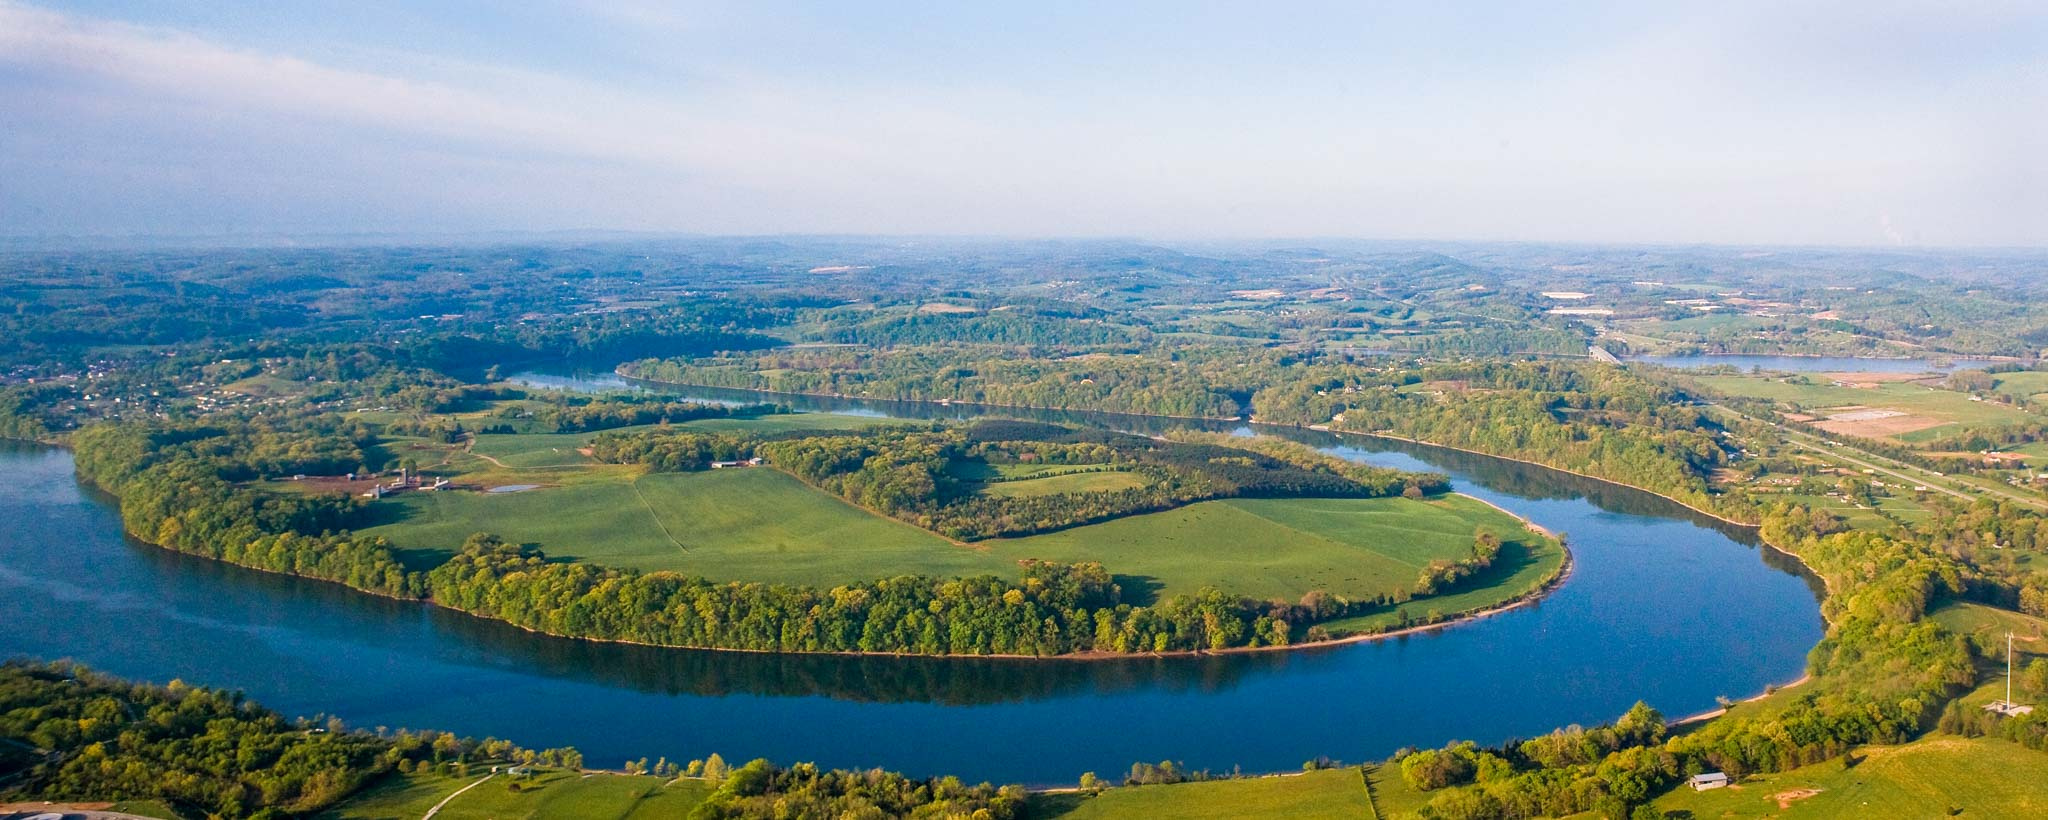 Tennessee River landscape